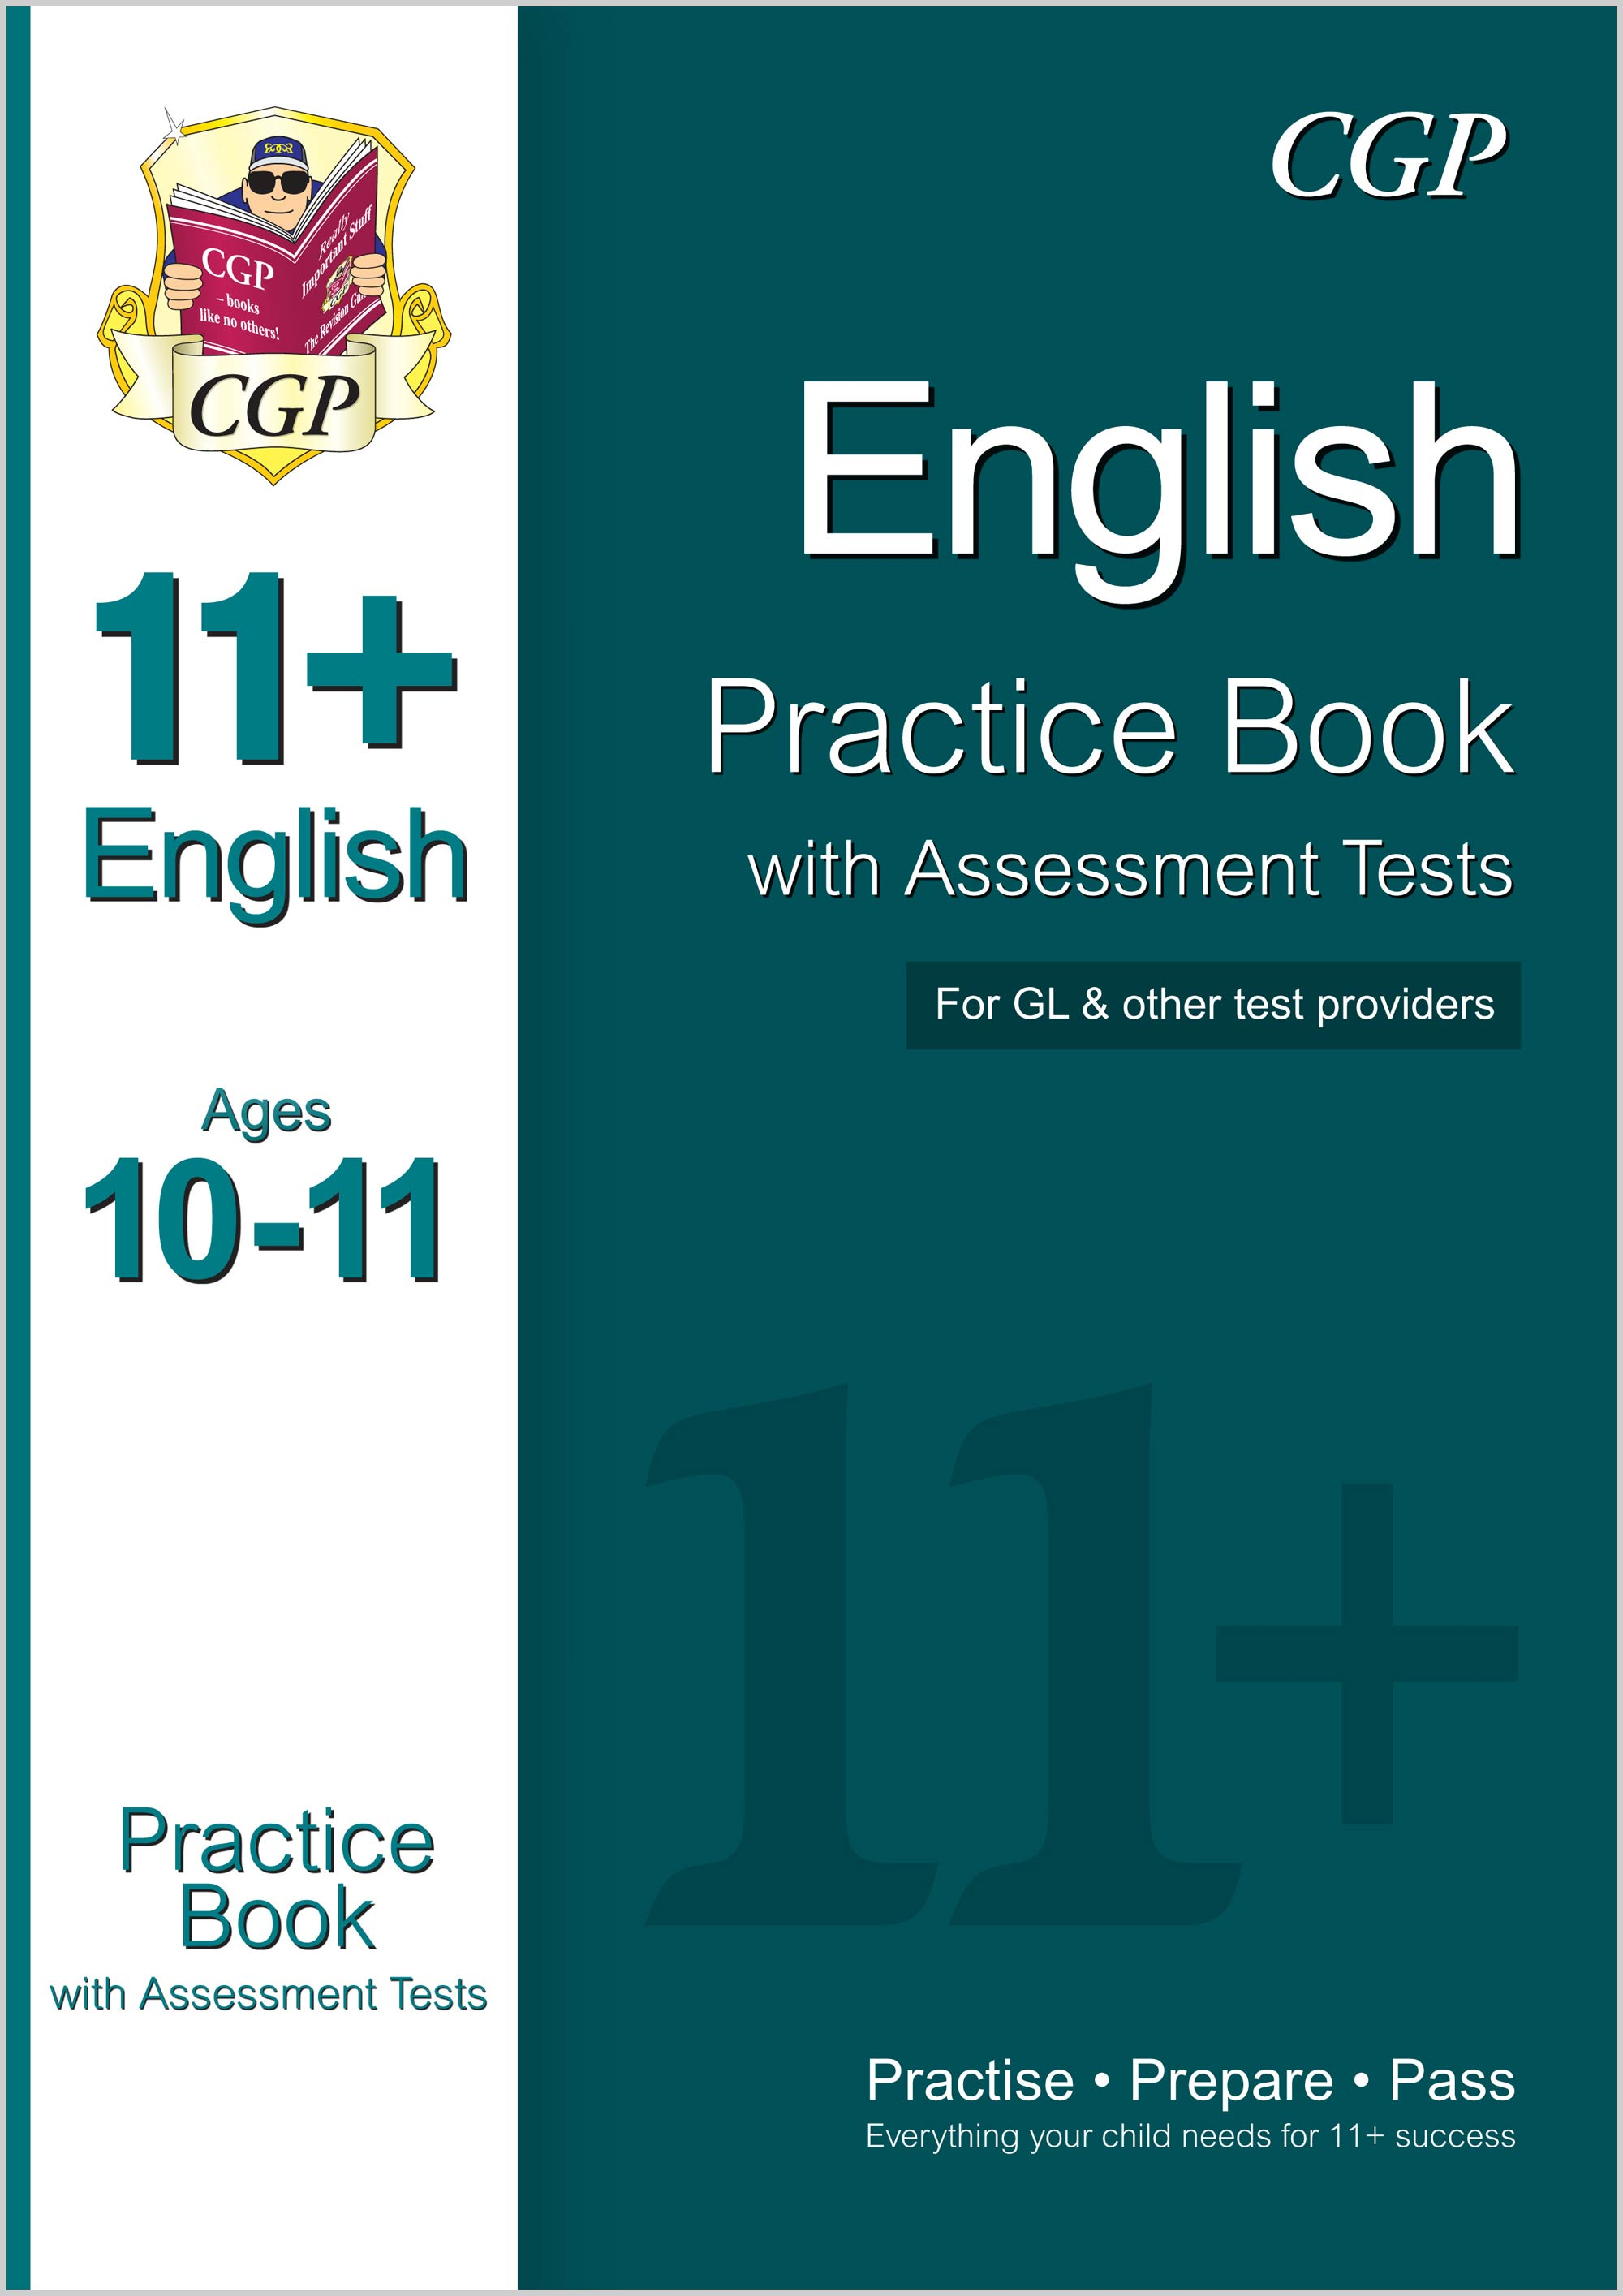 E6QE1 - 11+ English Practice Book with Assessment Tests Ages 10-11 (for GL & Other Test Providers)